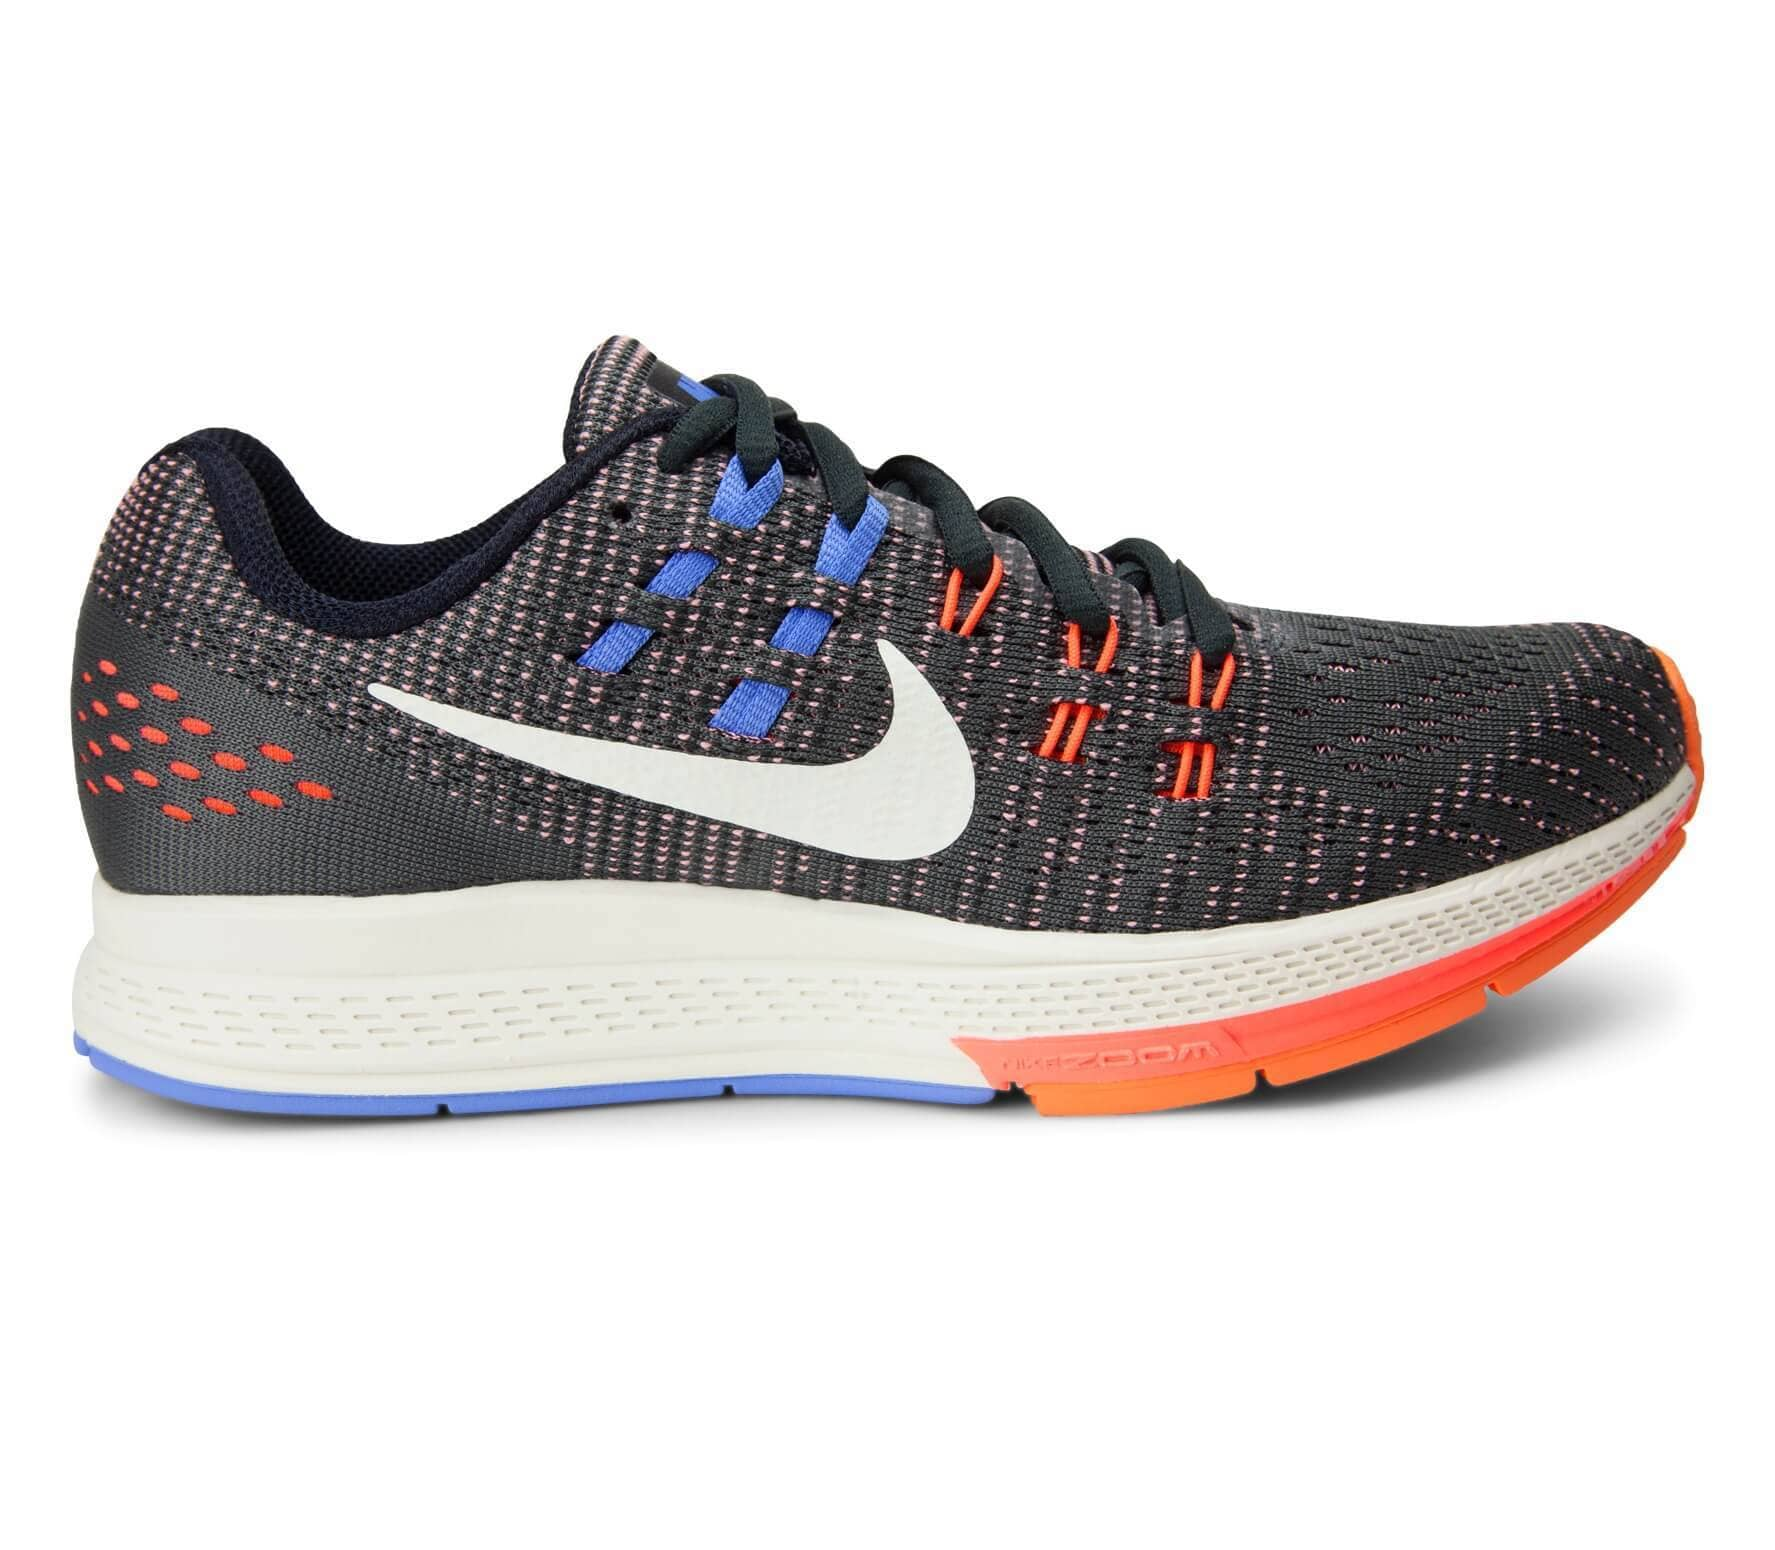 0129d9a0c68 Nike - Air Zoom Structure 19 women s running shoes (anthracite orange)